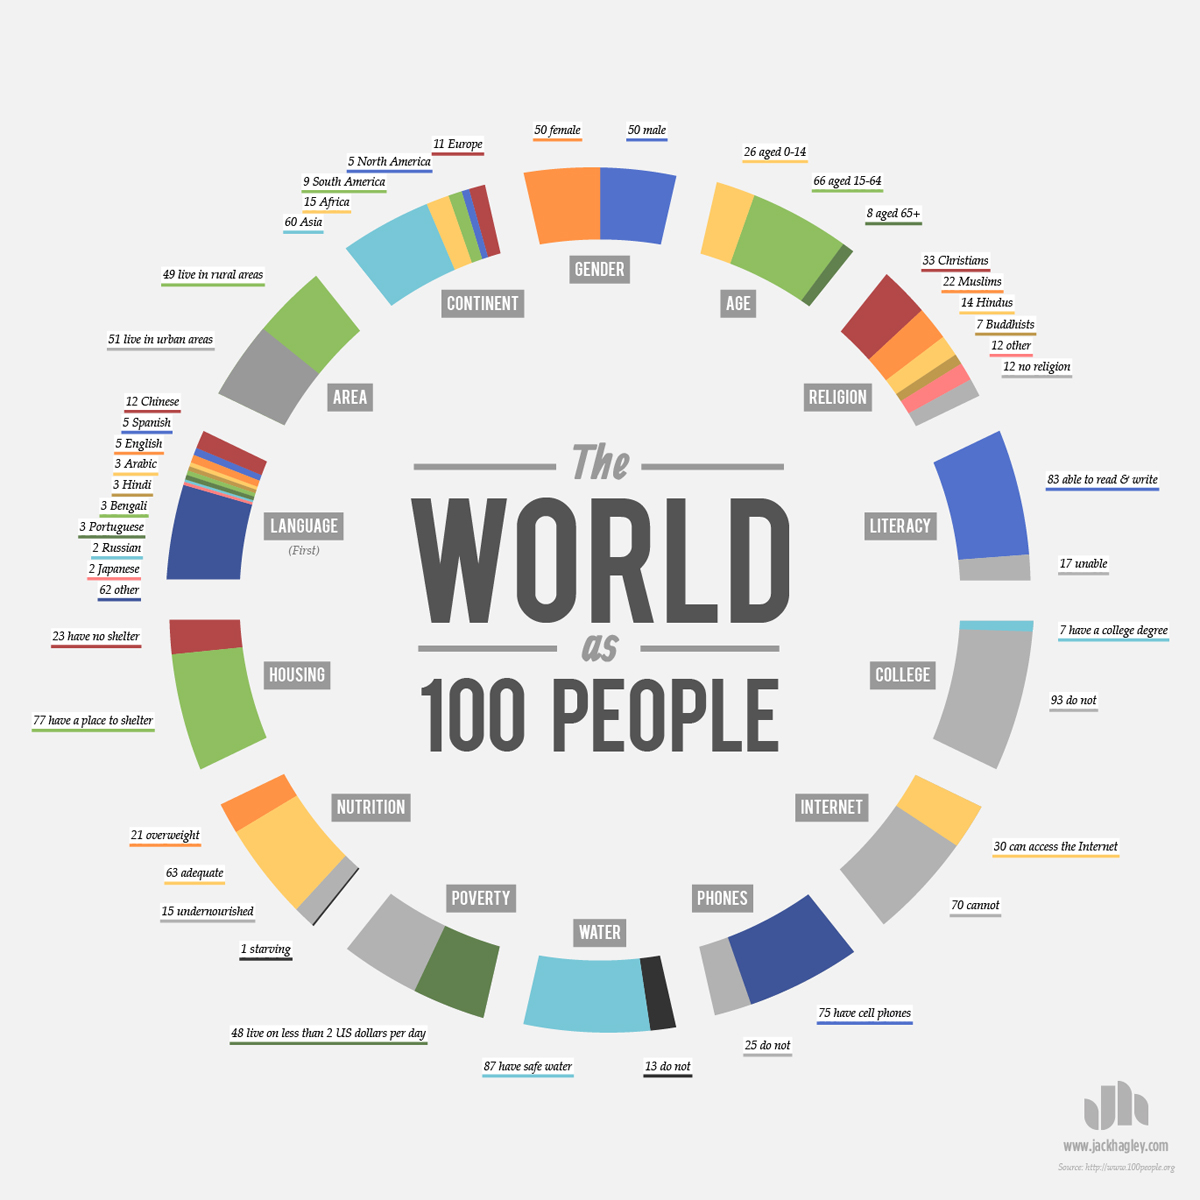 If the world were a village of 100 people lesson plan - If The World Were A Village Of 100 People Lesson Plan World As 100 People_infographic